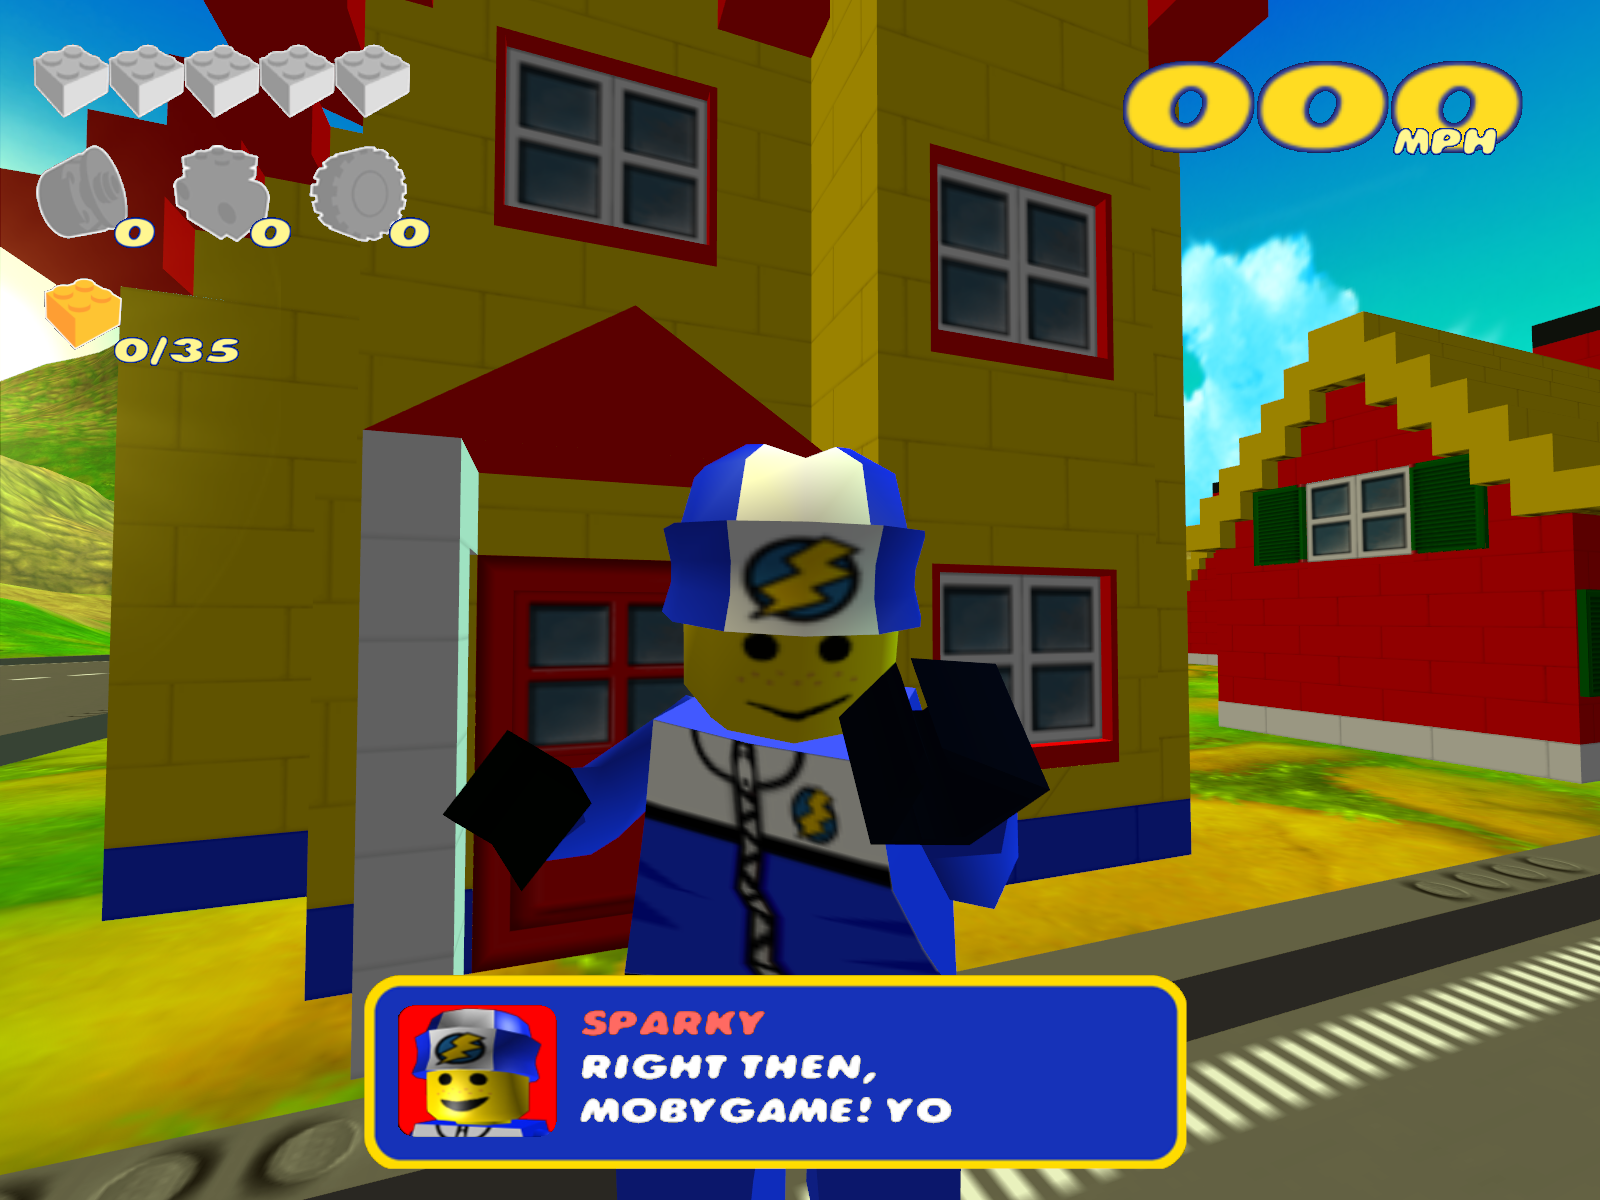 http://www.mobygames.com/images/shots/l/285491-lego-racers-2-windows-screenshot-sparky-is-your-guide-in-sandy.png